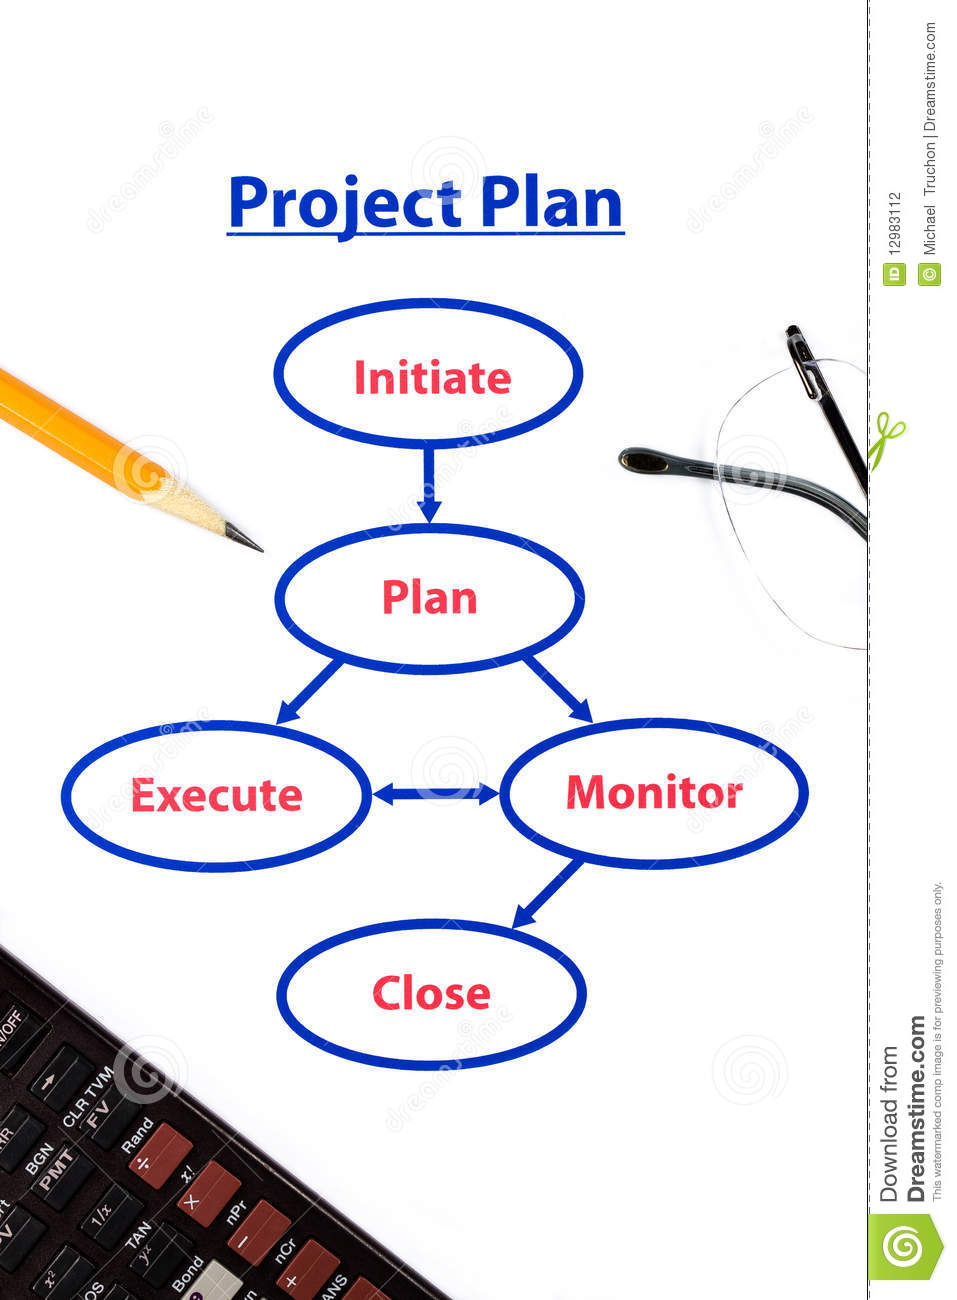 data flow diagram of calculator ford el wiring stereo project plan process stock photography - image: 12983112